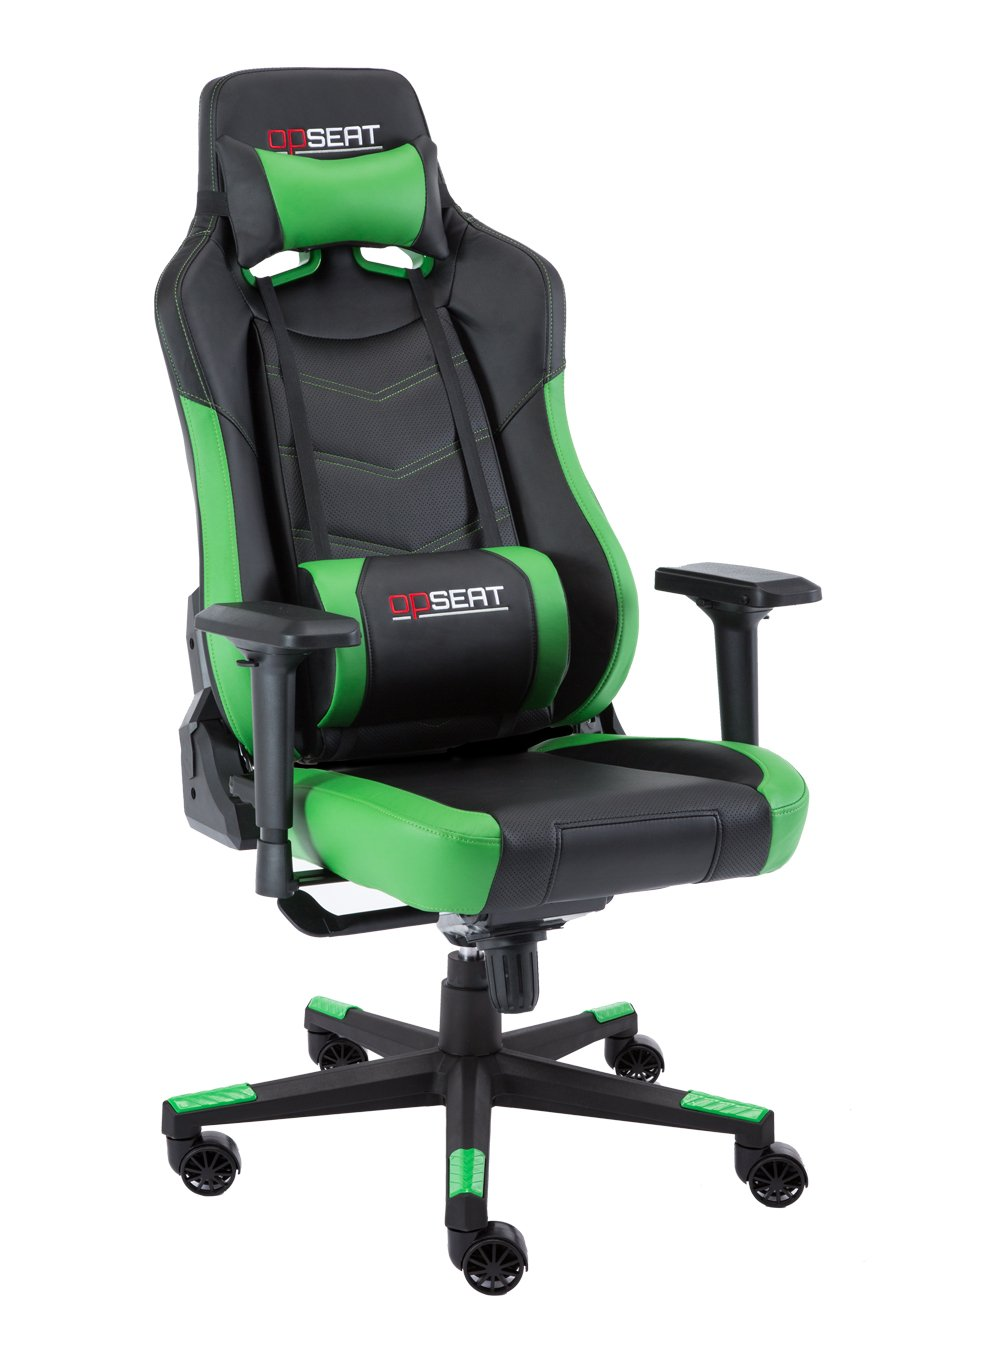 Amazon.com: OPSEAT Grandmaster Series 2018 Computer Gaming Chair ...